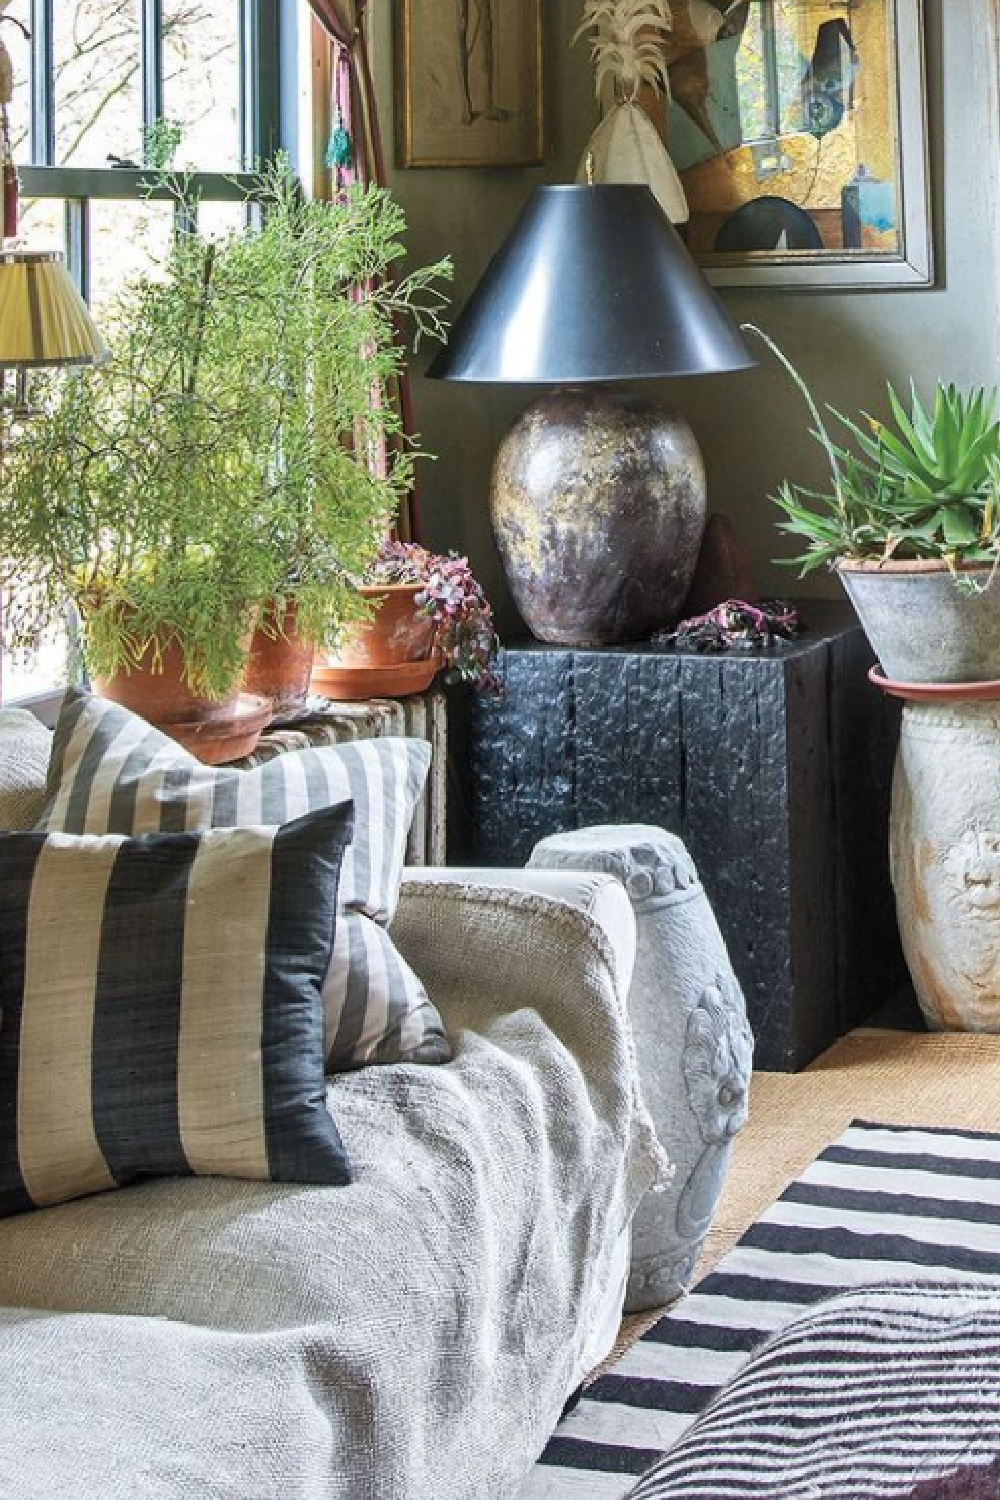 Milieu magazine Fall 2021 featured cozy rustic luxe living room - Interior Design @michaeltrappinc Photography @kindraclineffphotography